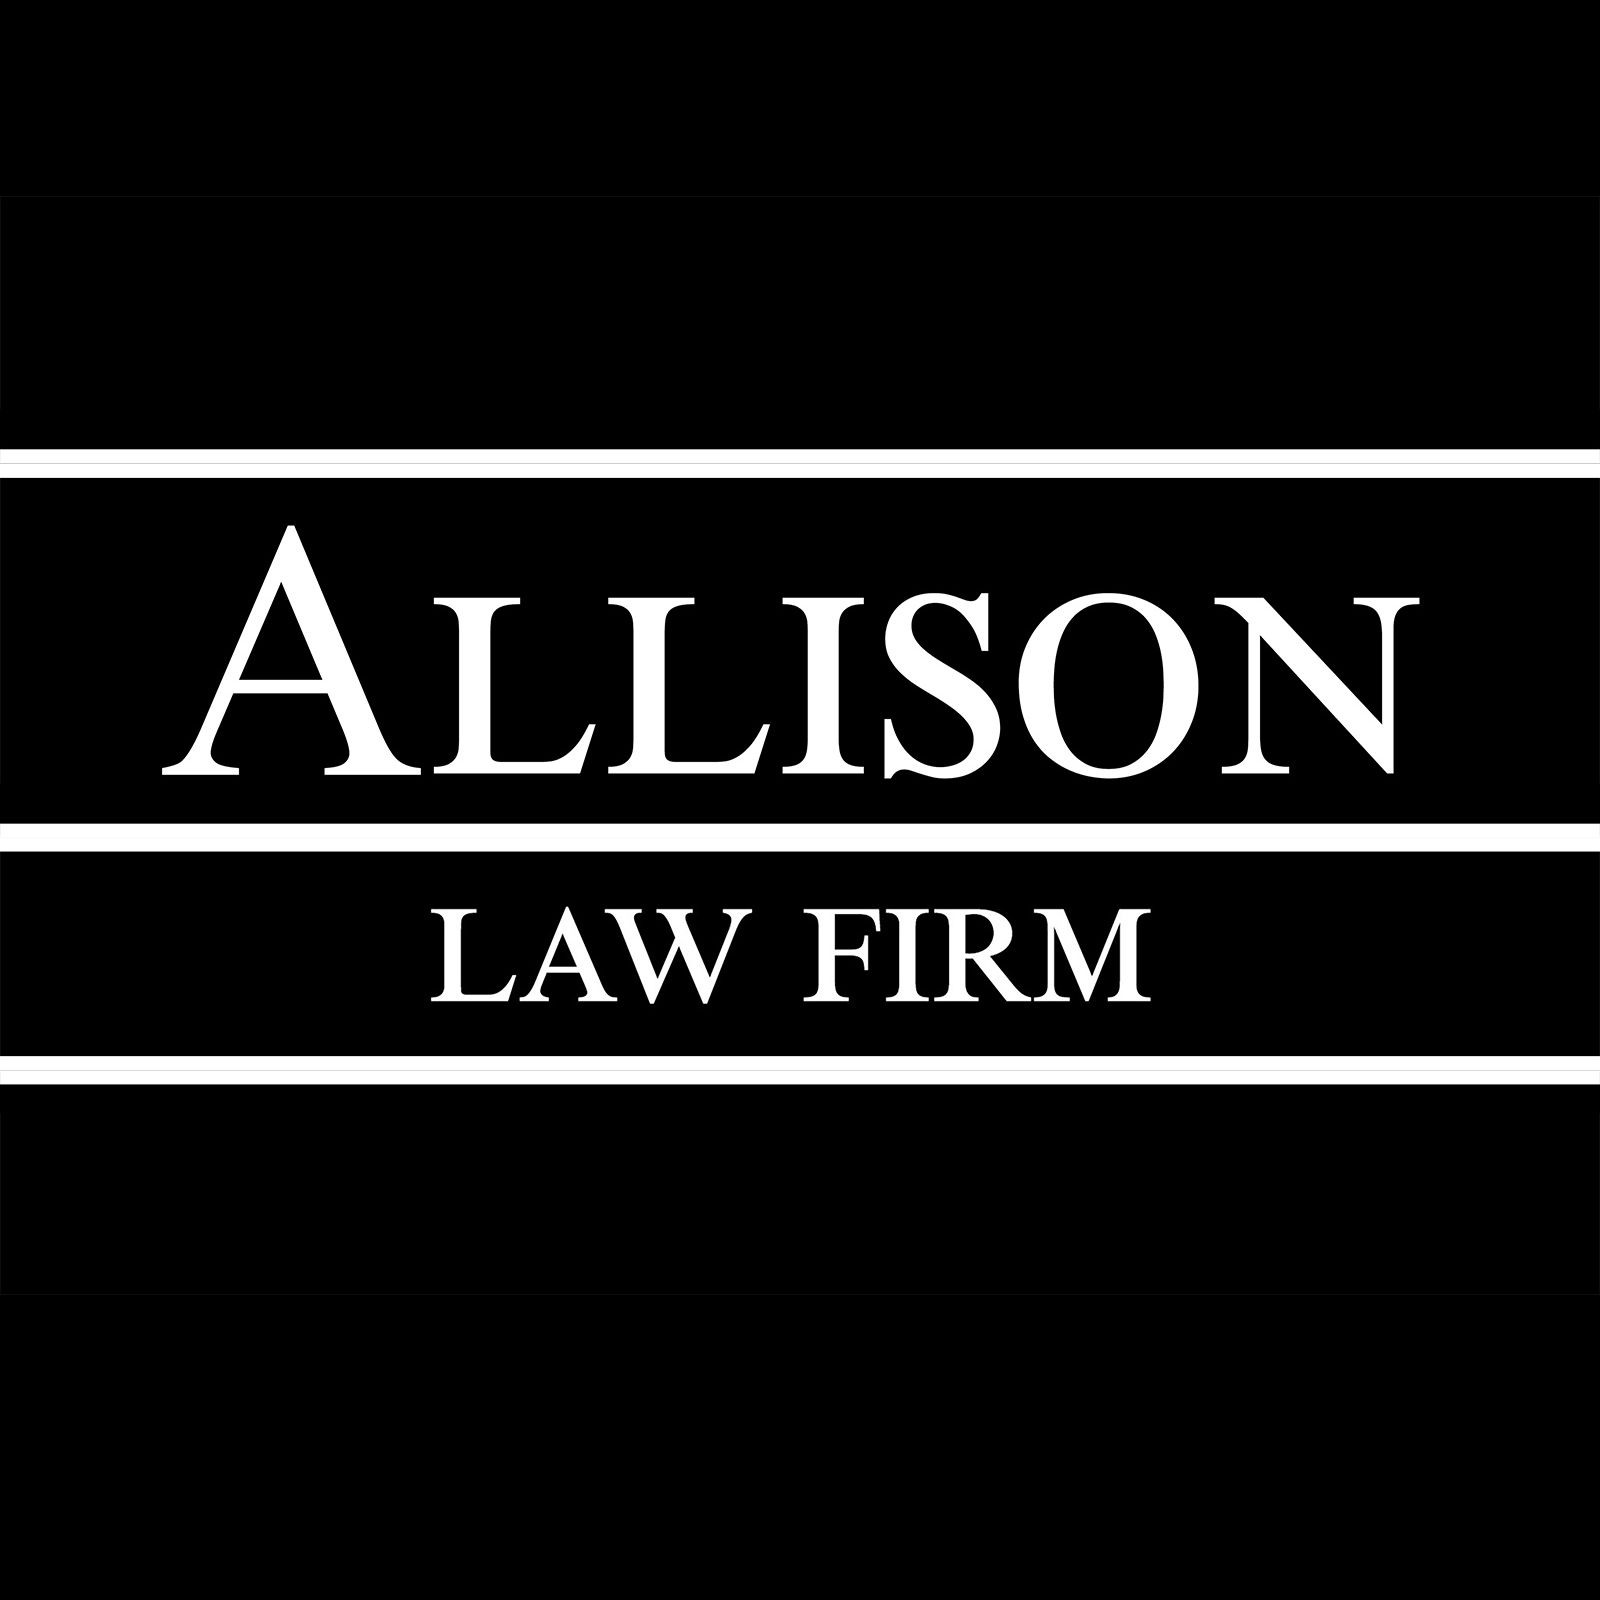 Allison Law Firm